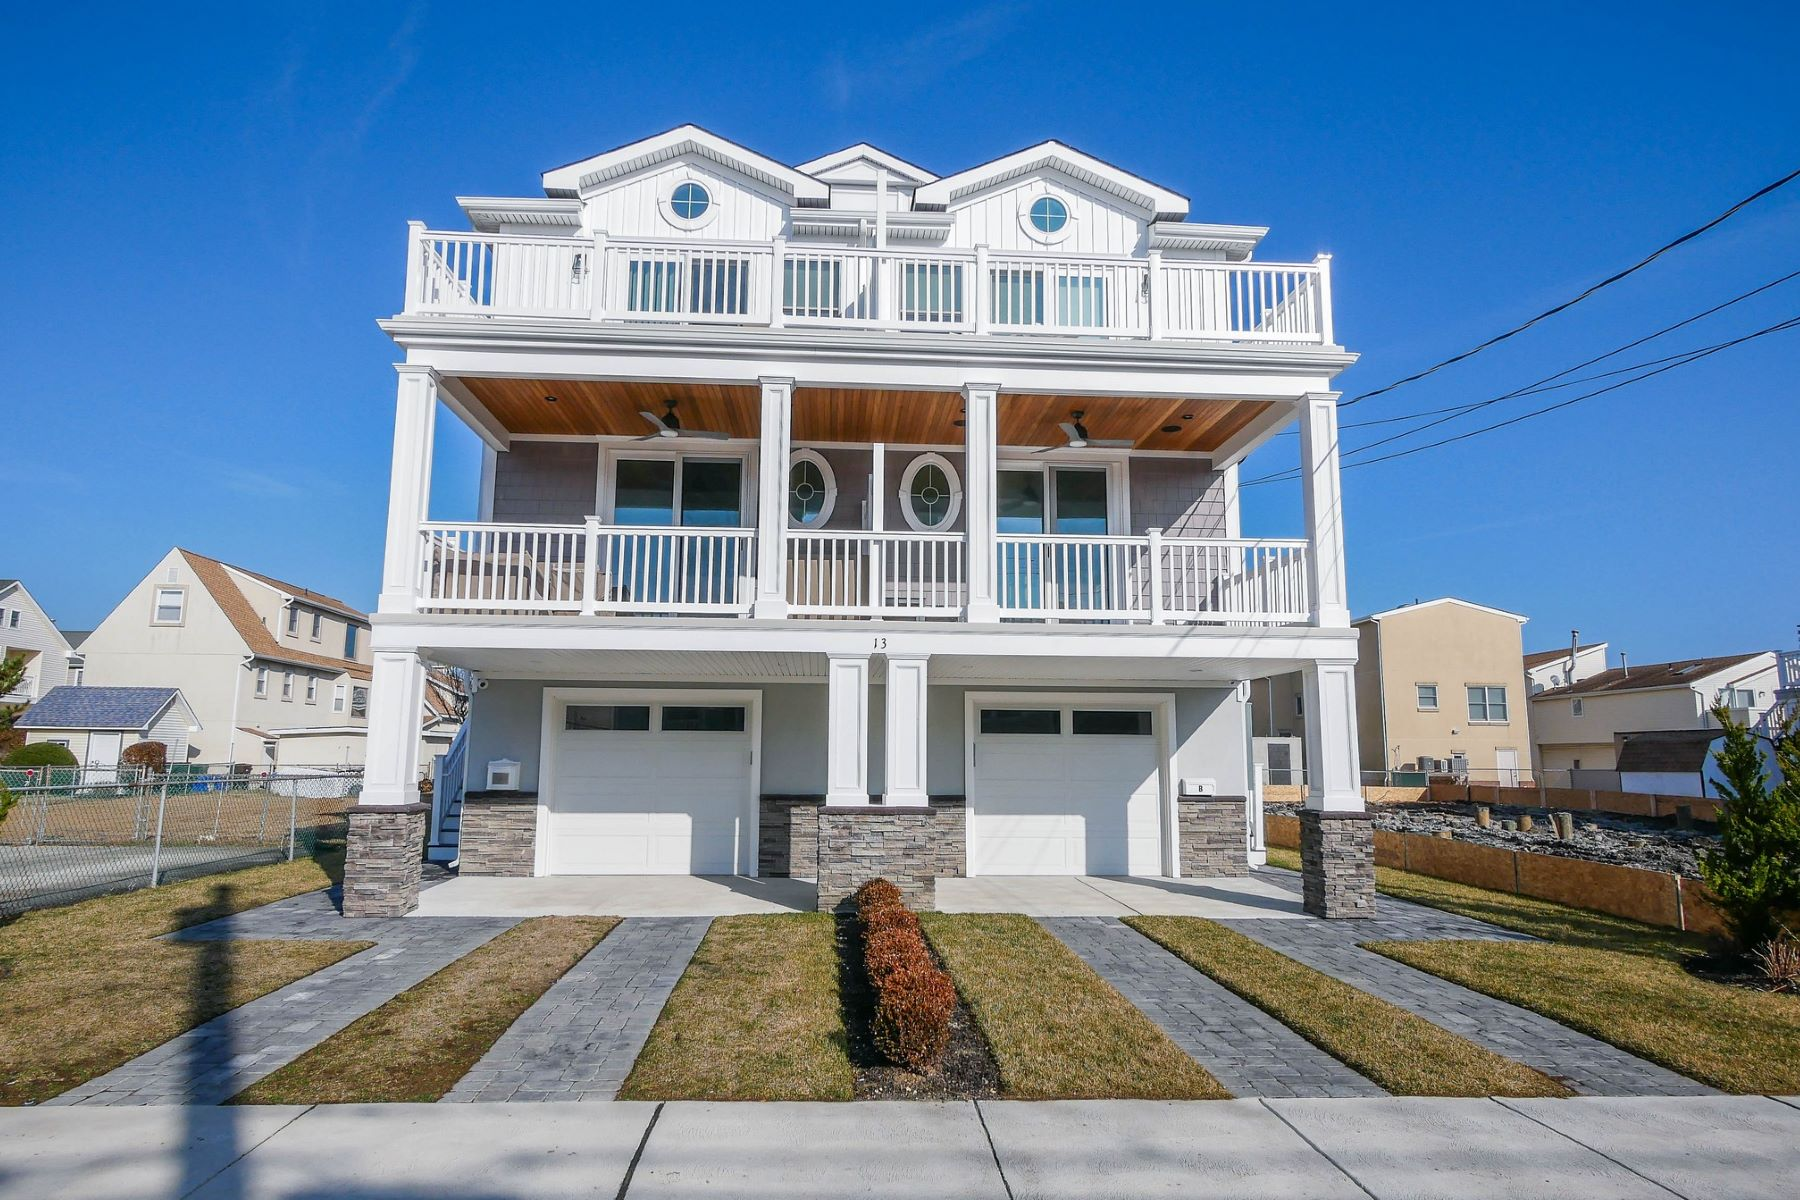 townhouses for Sale at 13 N Jefferson Unit A Margate, New Jersey 08402 United States